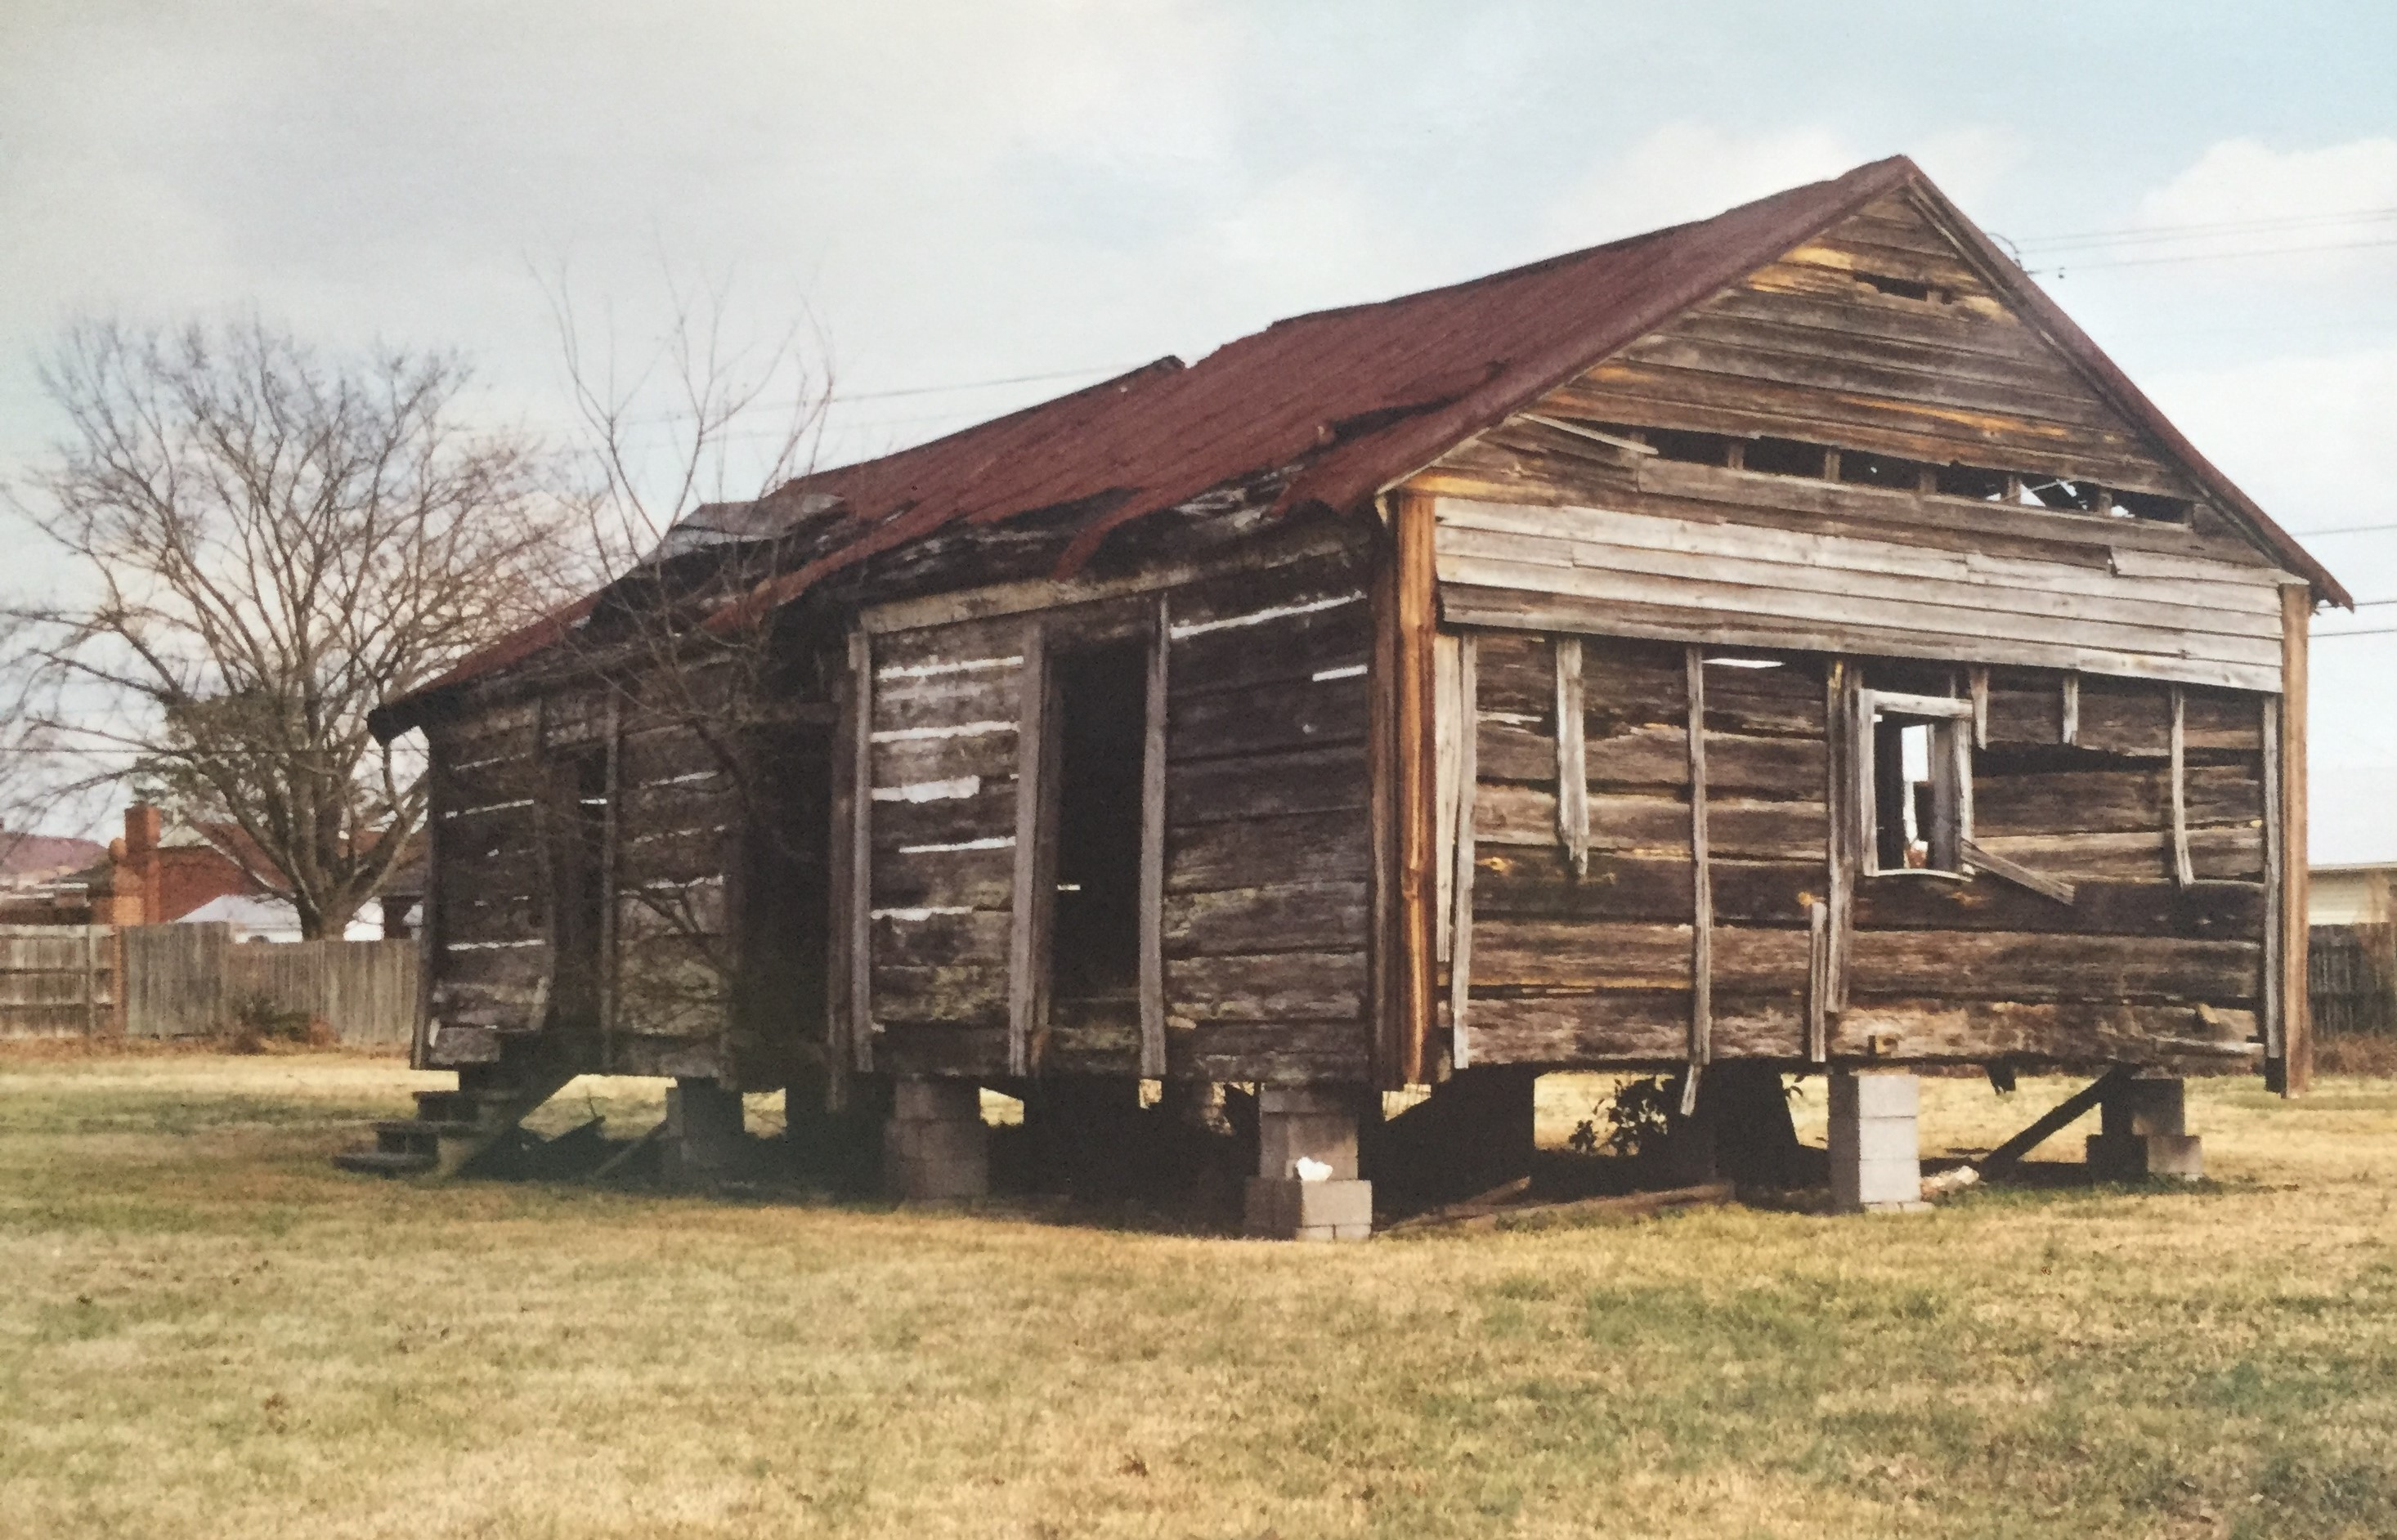 Photo 1 of possible slave cabin